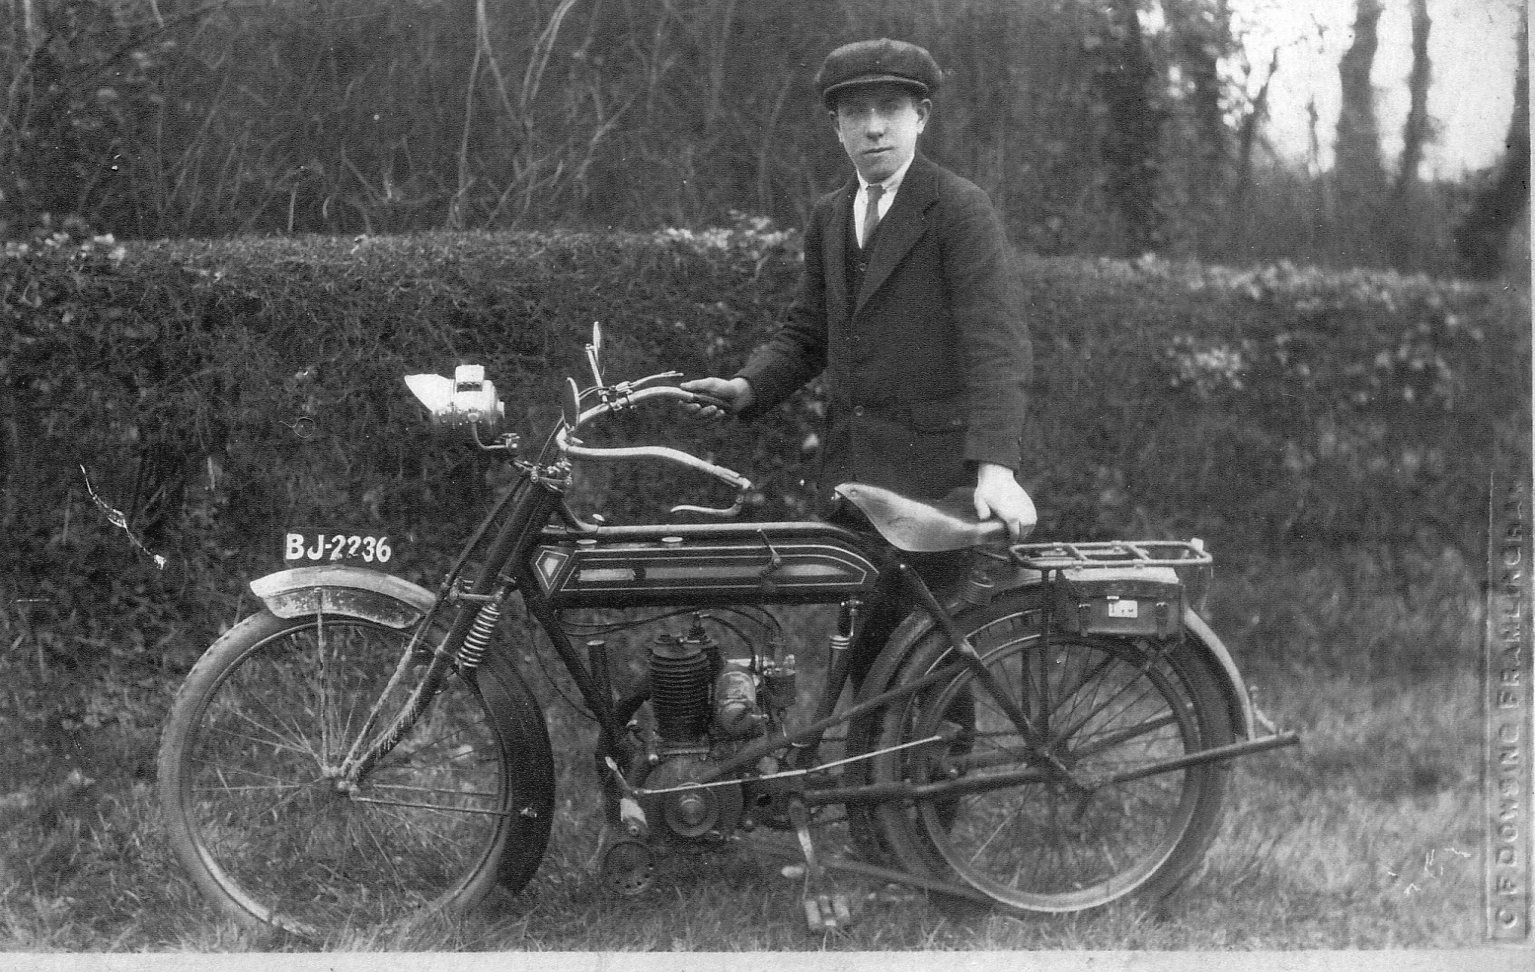 Bernard Kemp with motorcycle